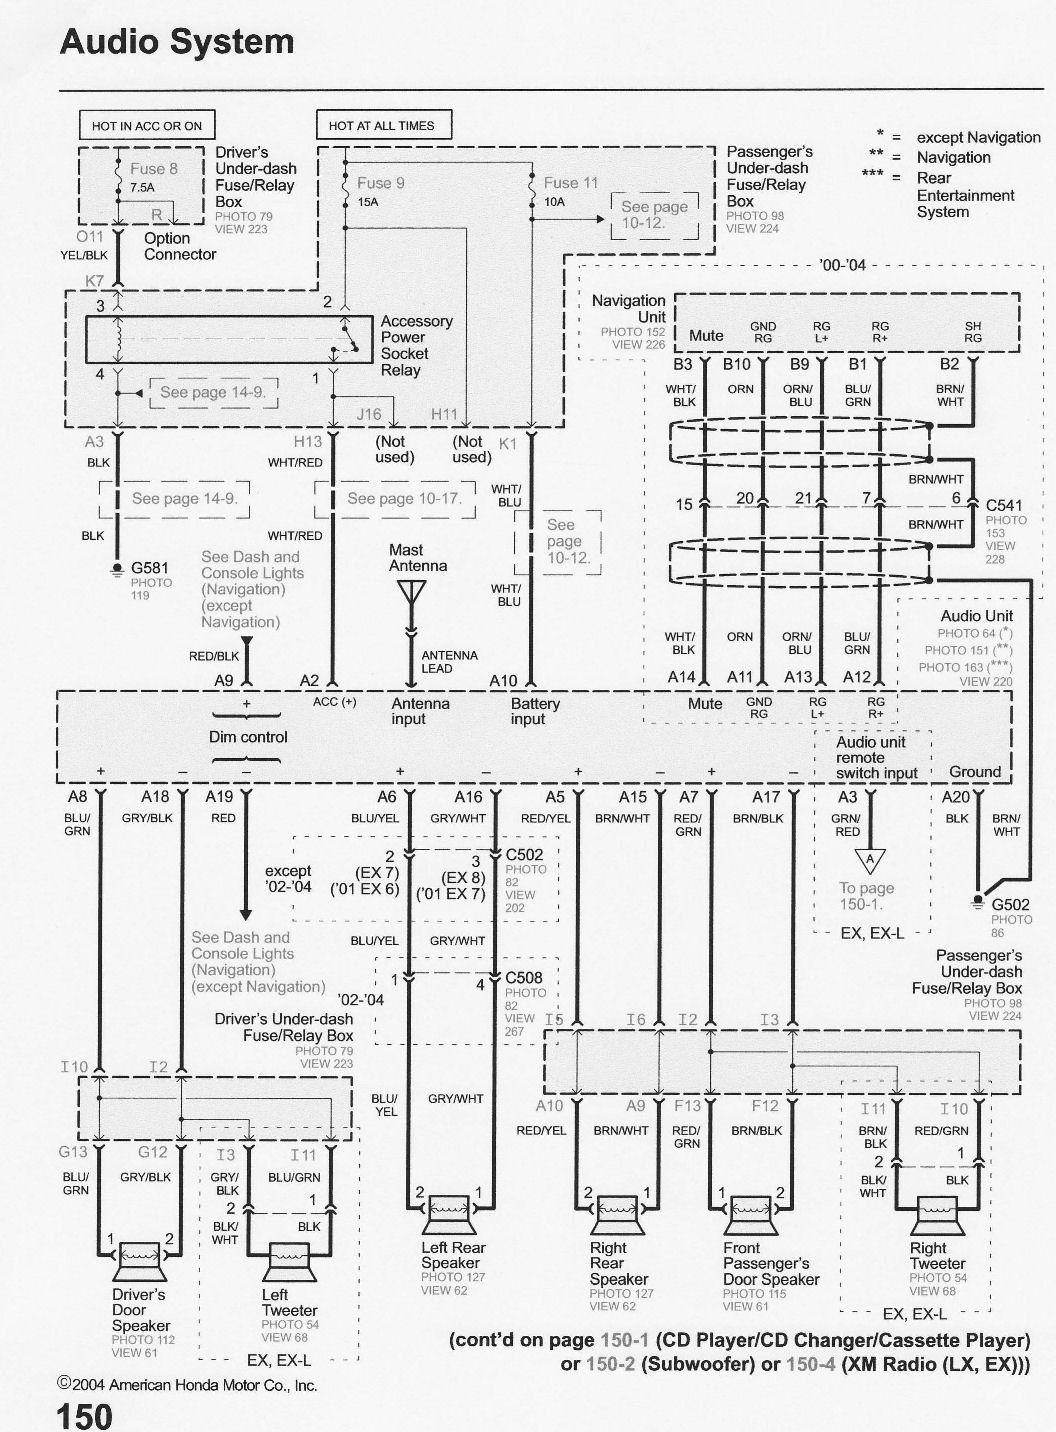 2009 Honda Odyssey Wiring Diagram - Wiring Diagram Direct jagged-course -  jagged-course.siciliabeb.it | 2005 Honda Odyssey Wire Diagram |  | jagged-course.siciliabeb.it